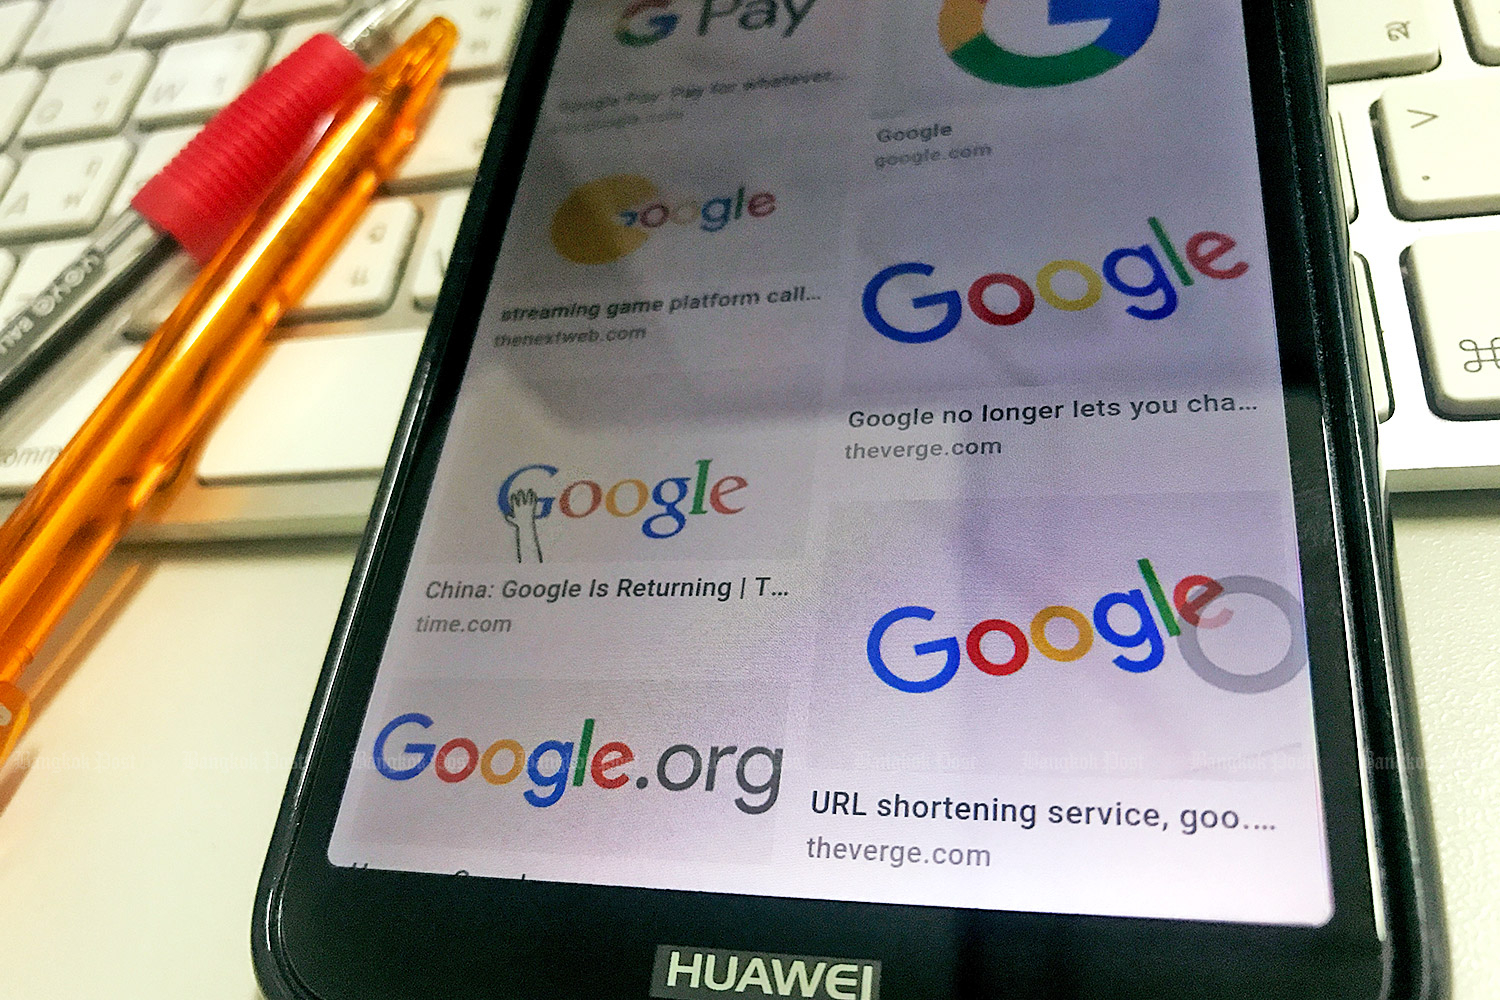 Google search results on a Huawei smartphone. The US internet giant has suspended business with China's Huawei. (Photo by Pattanapong Hirunard)